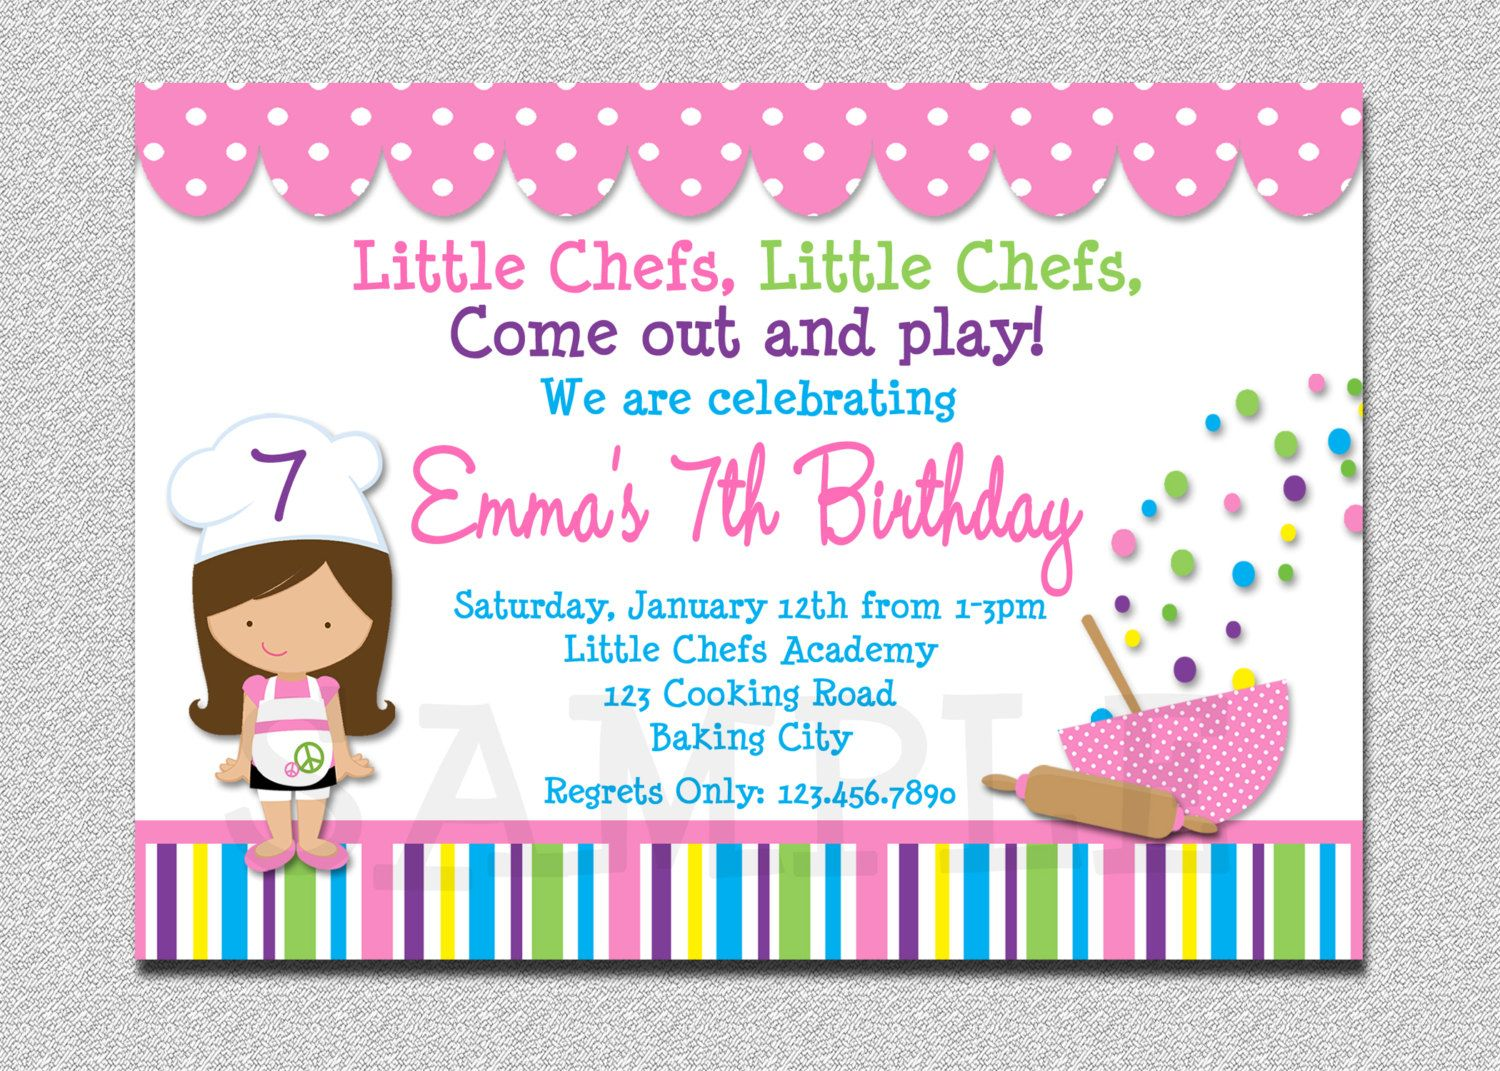 Baking birthday party invitations my birthday pinterest baking kids cooking birthday party invitation cooking baking birthday baking party invite with recipe cards front and back designs stopboris Choice Image